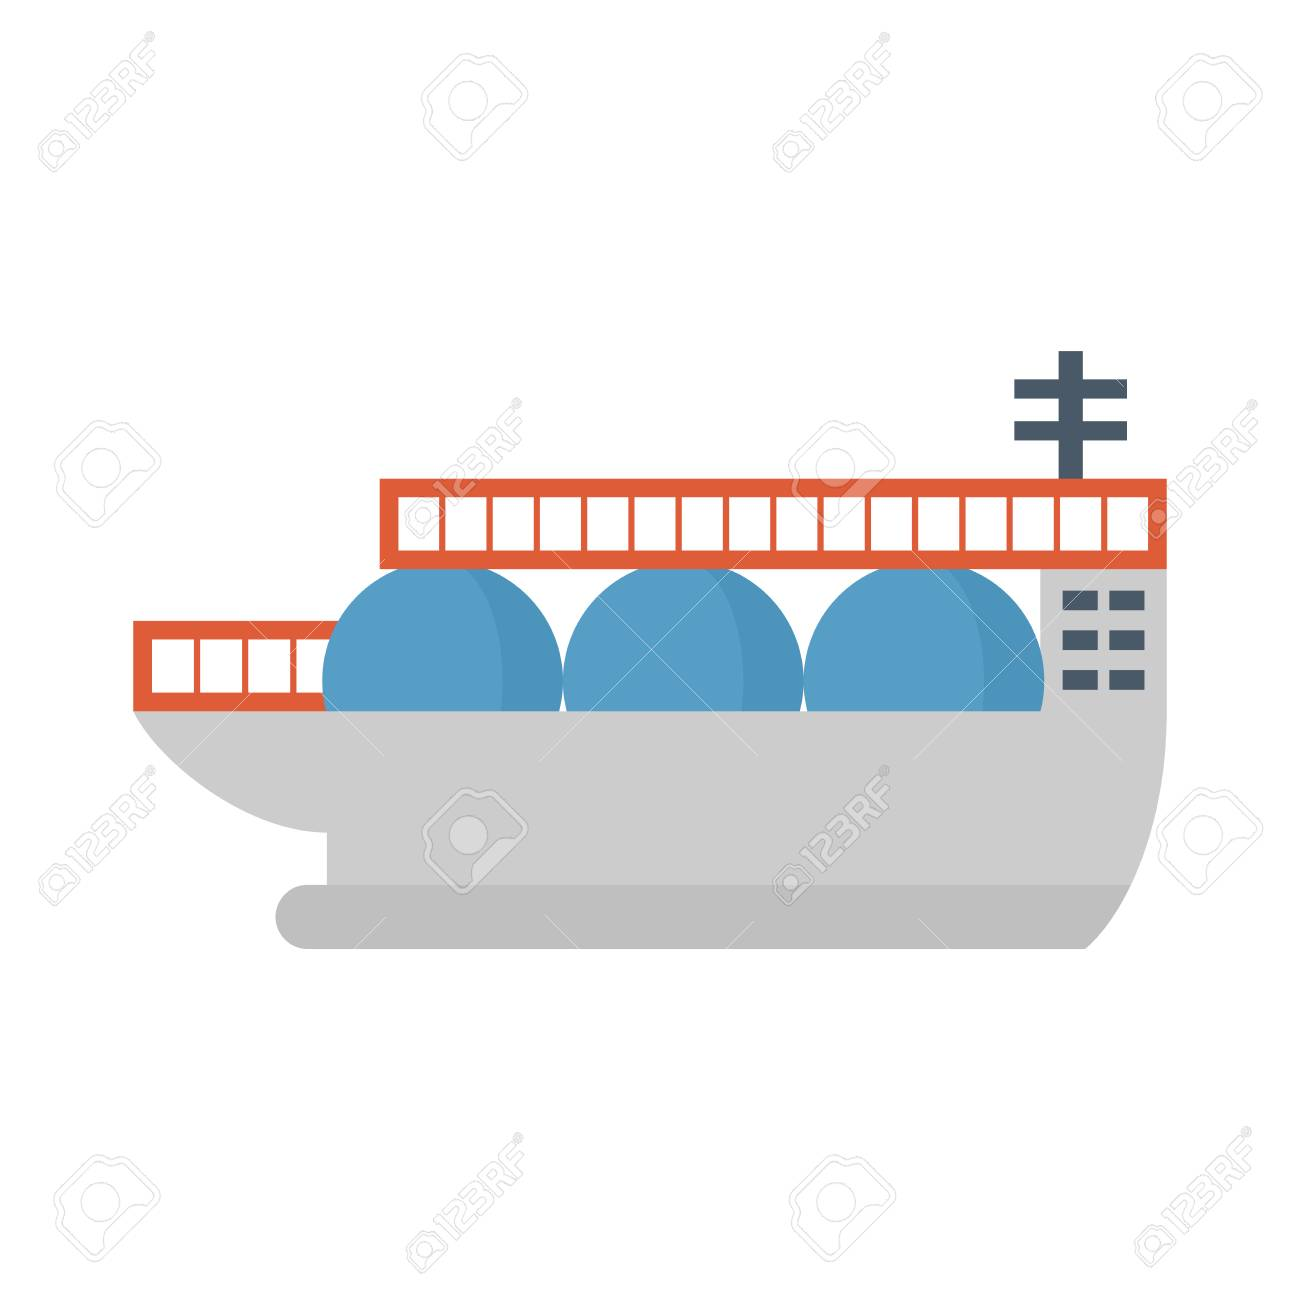 hight resolution of natural gas shipping and cargo ship icon stock vector 124654315